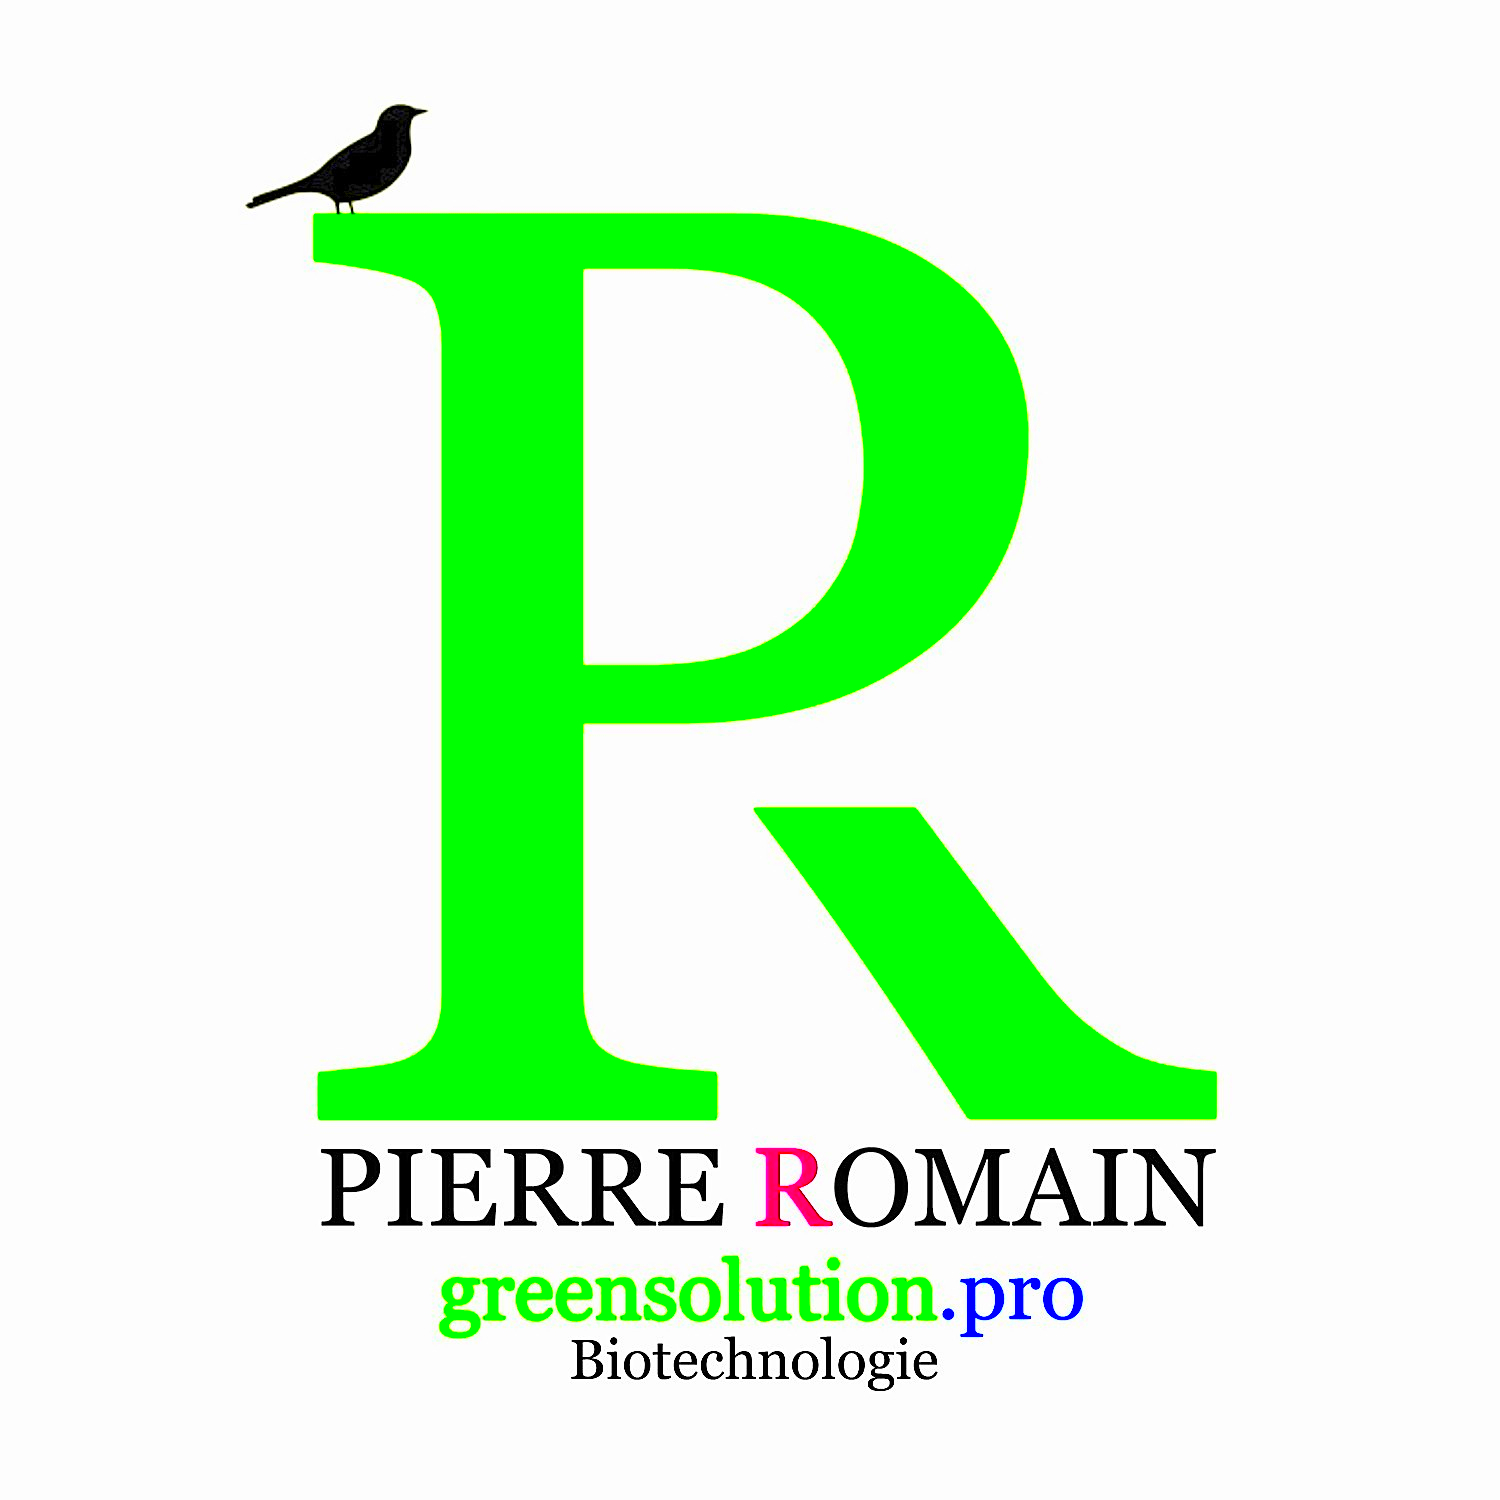 greensolution.pro